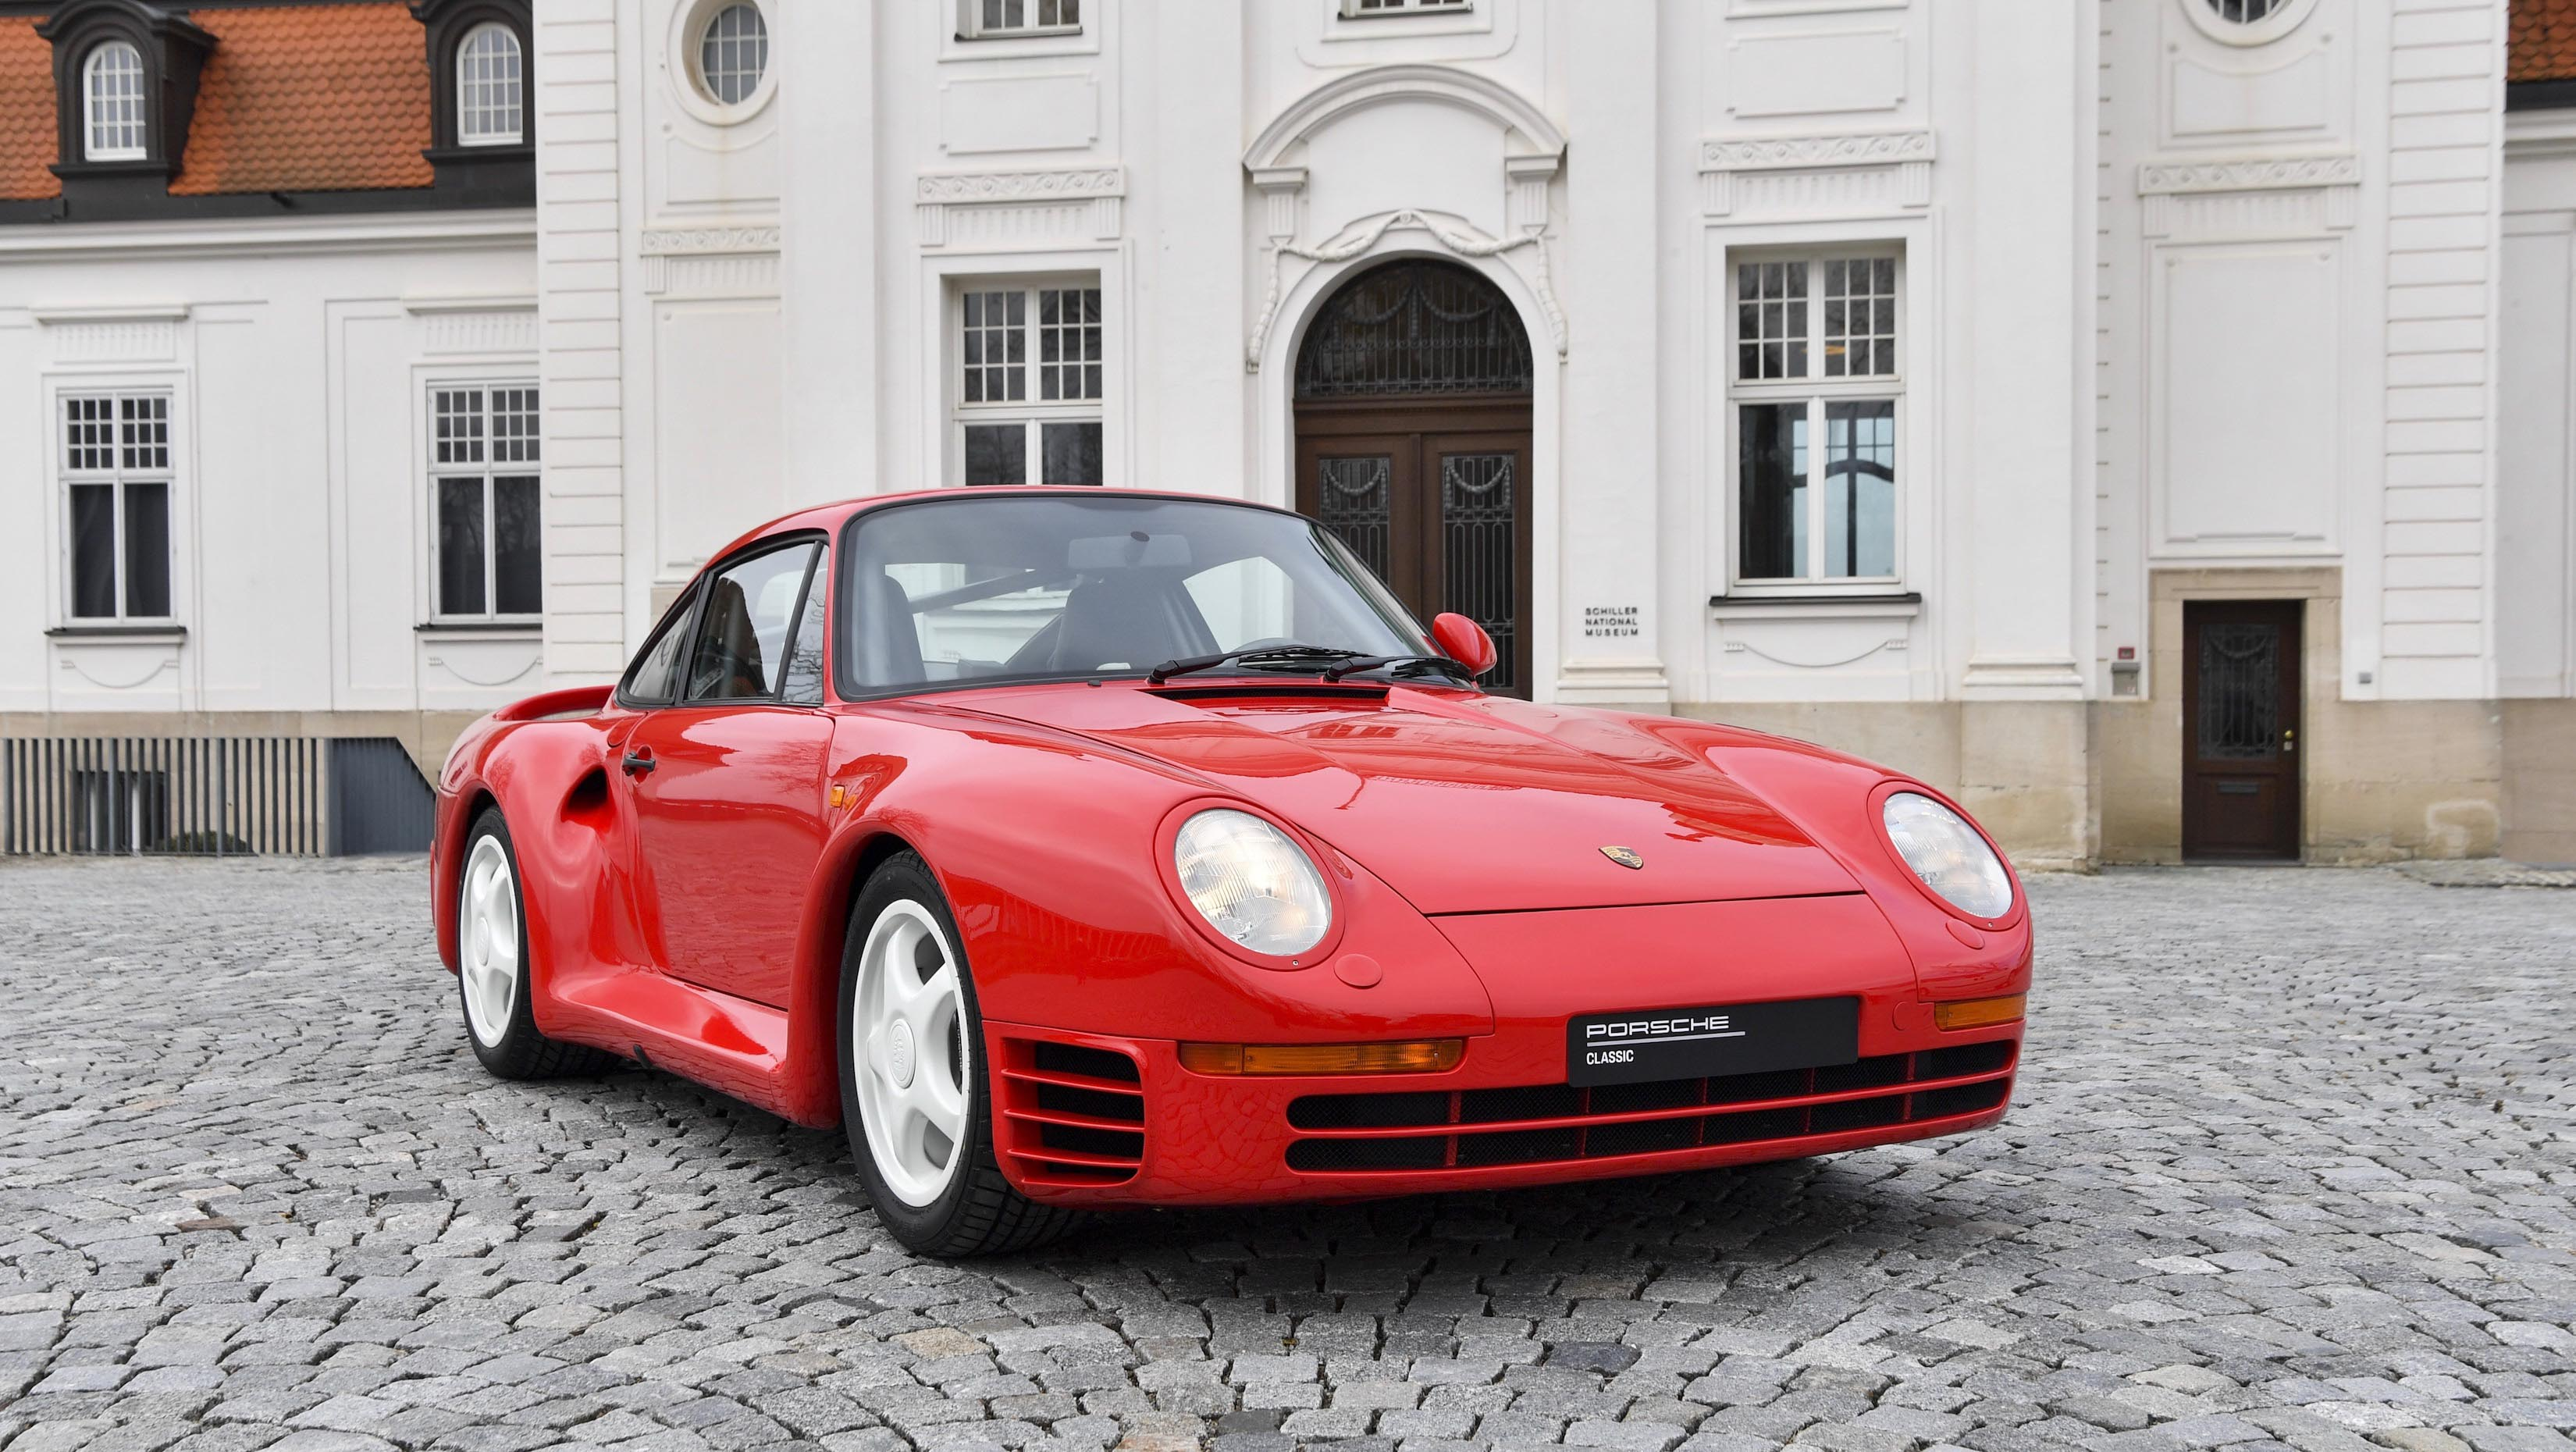 Fully restored Porsche 959 ready for Techno Classica 2018